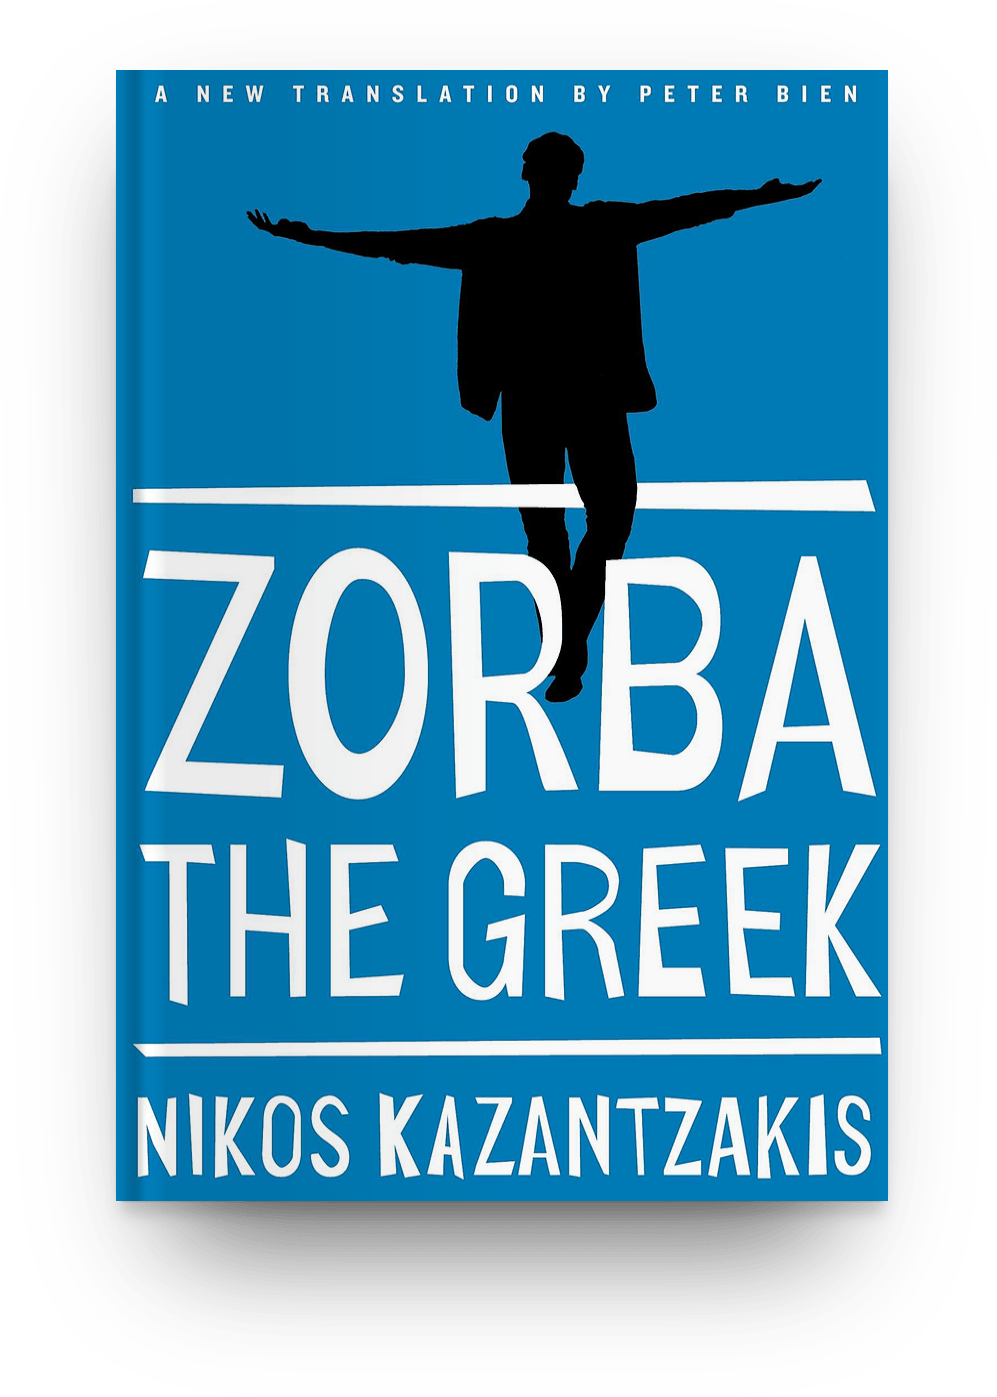 Zorba the Greek (1946) by Nikos Kazantzakis book cover